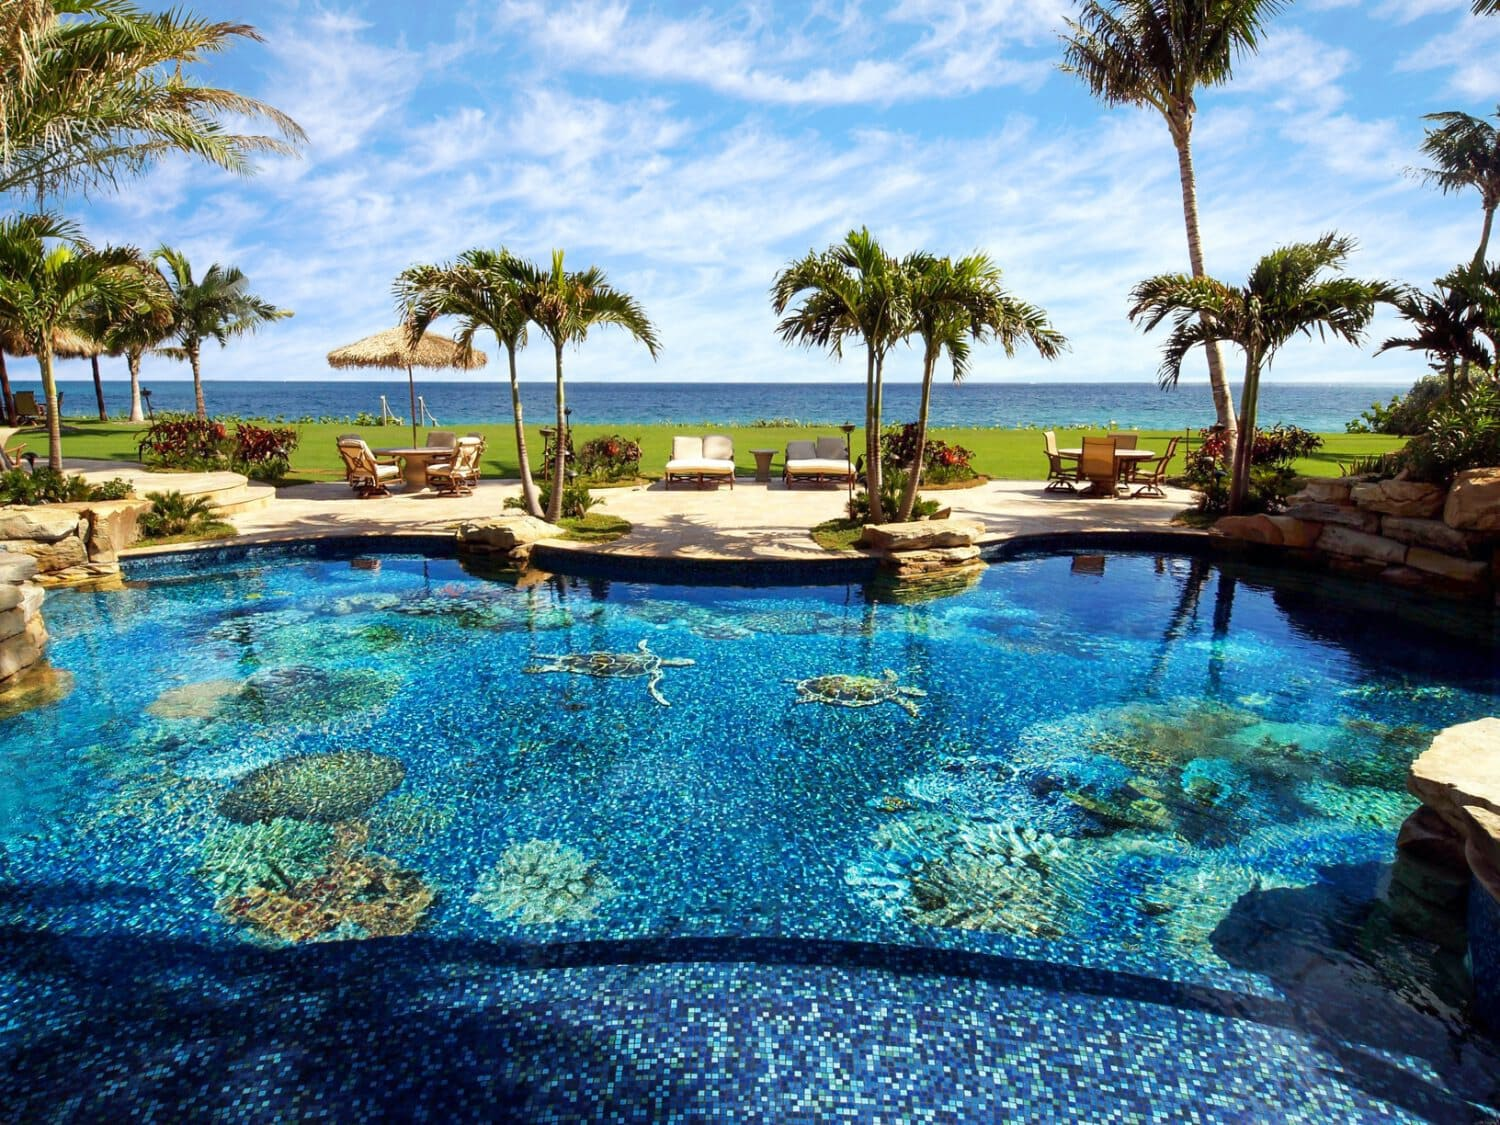 Pool mosaic design by Mosaicist